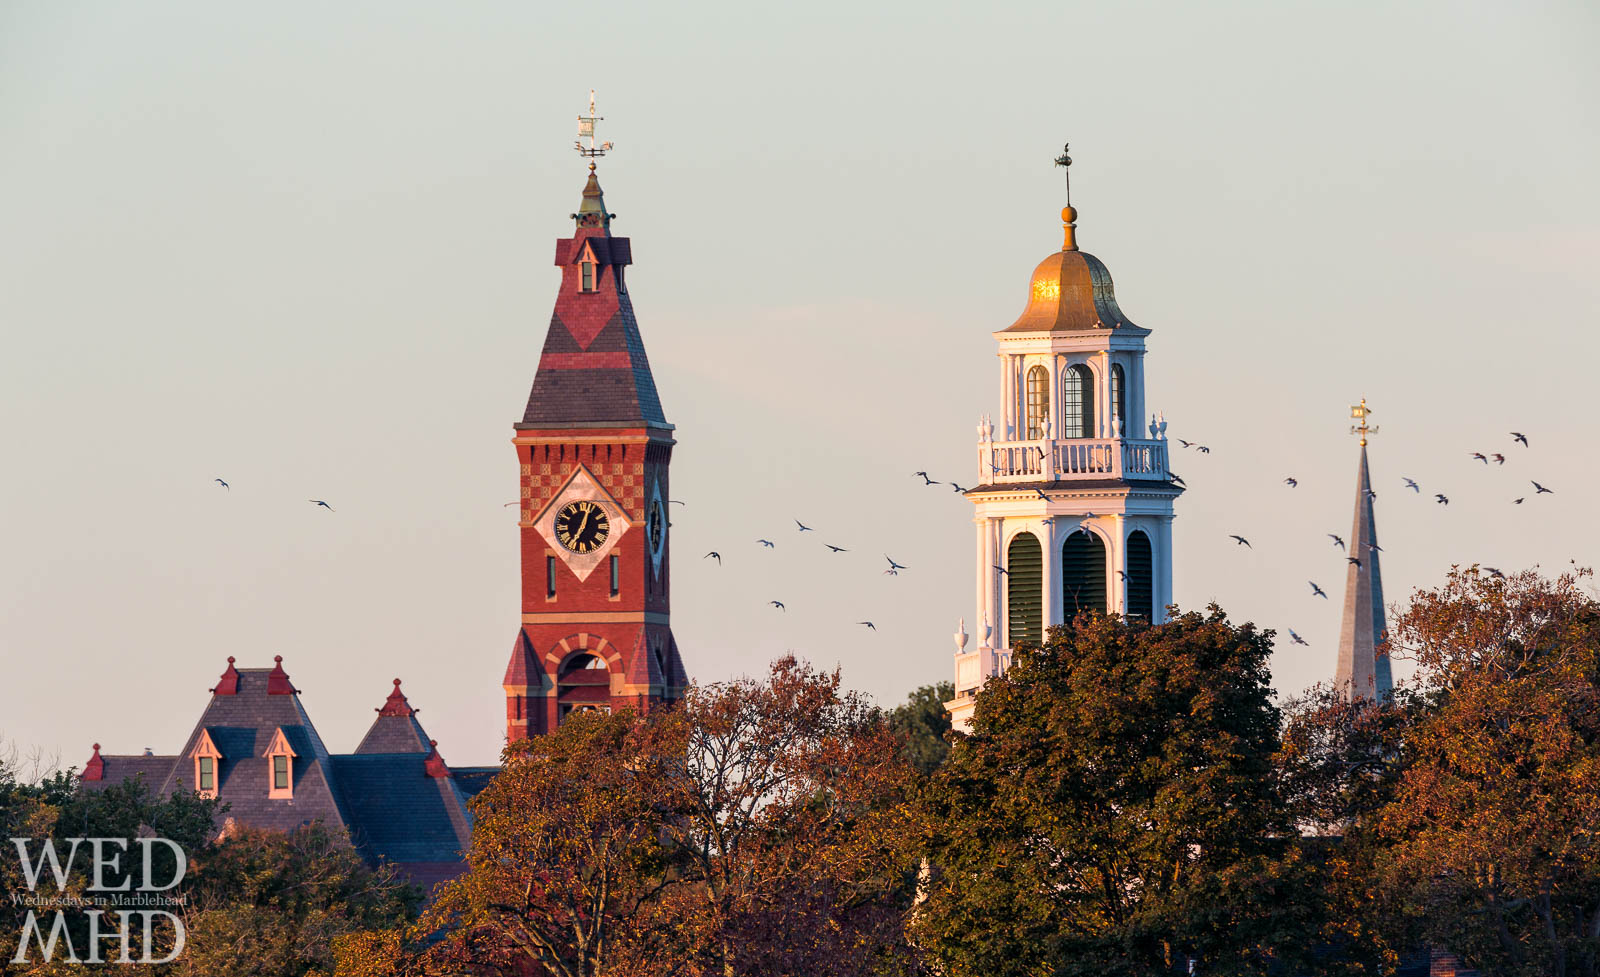 Birds fly between Abbot Hall, Old North Church and St. Michael's Steeple on a perfect morning in Marblehead